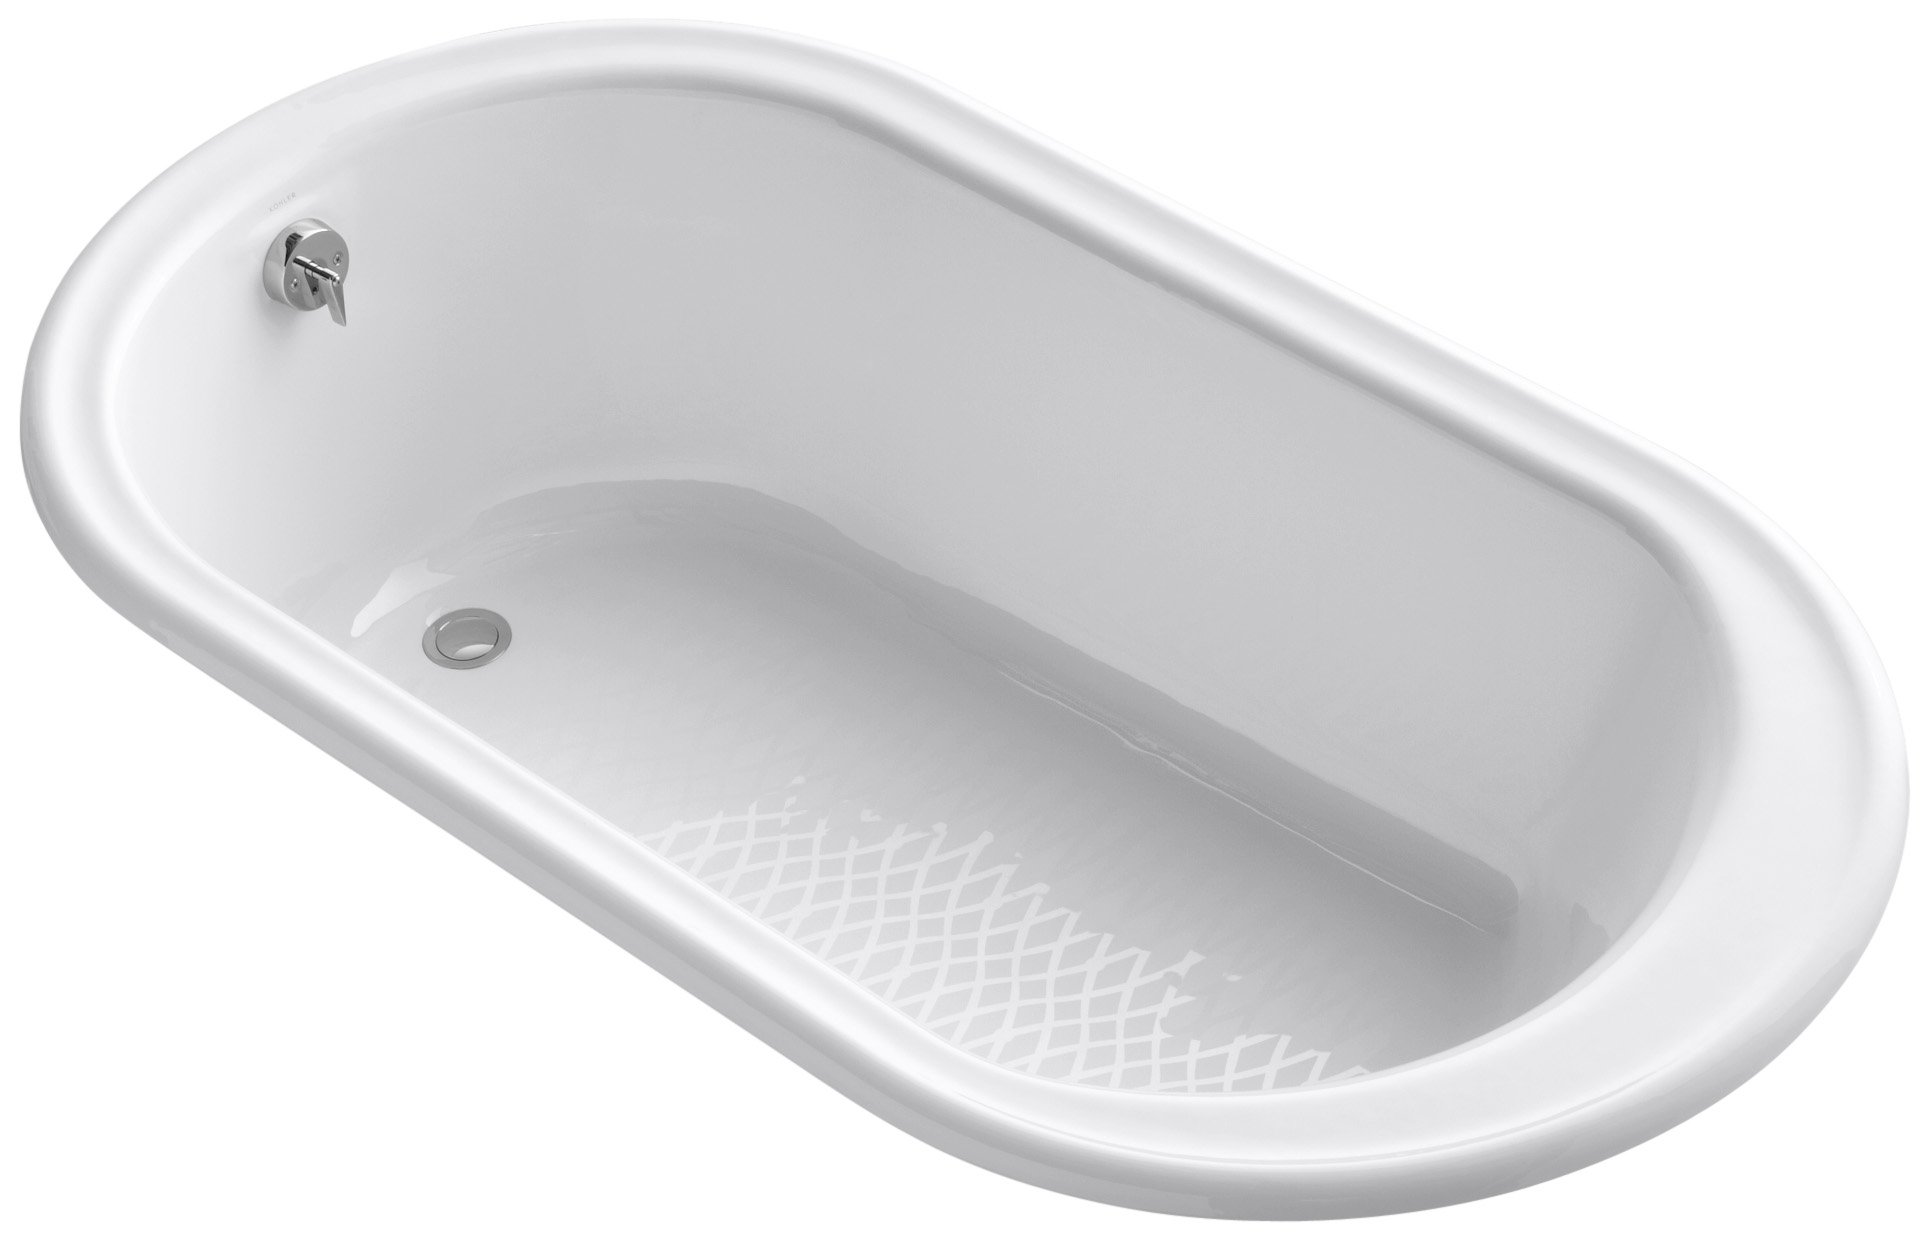 KOHLER K-711-0 Iron Works Bath, White